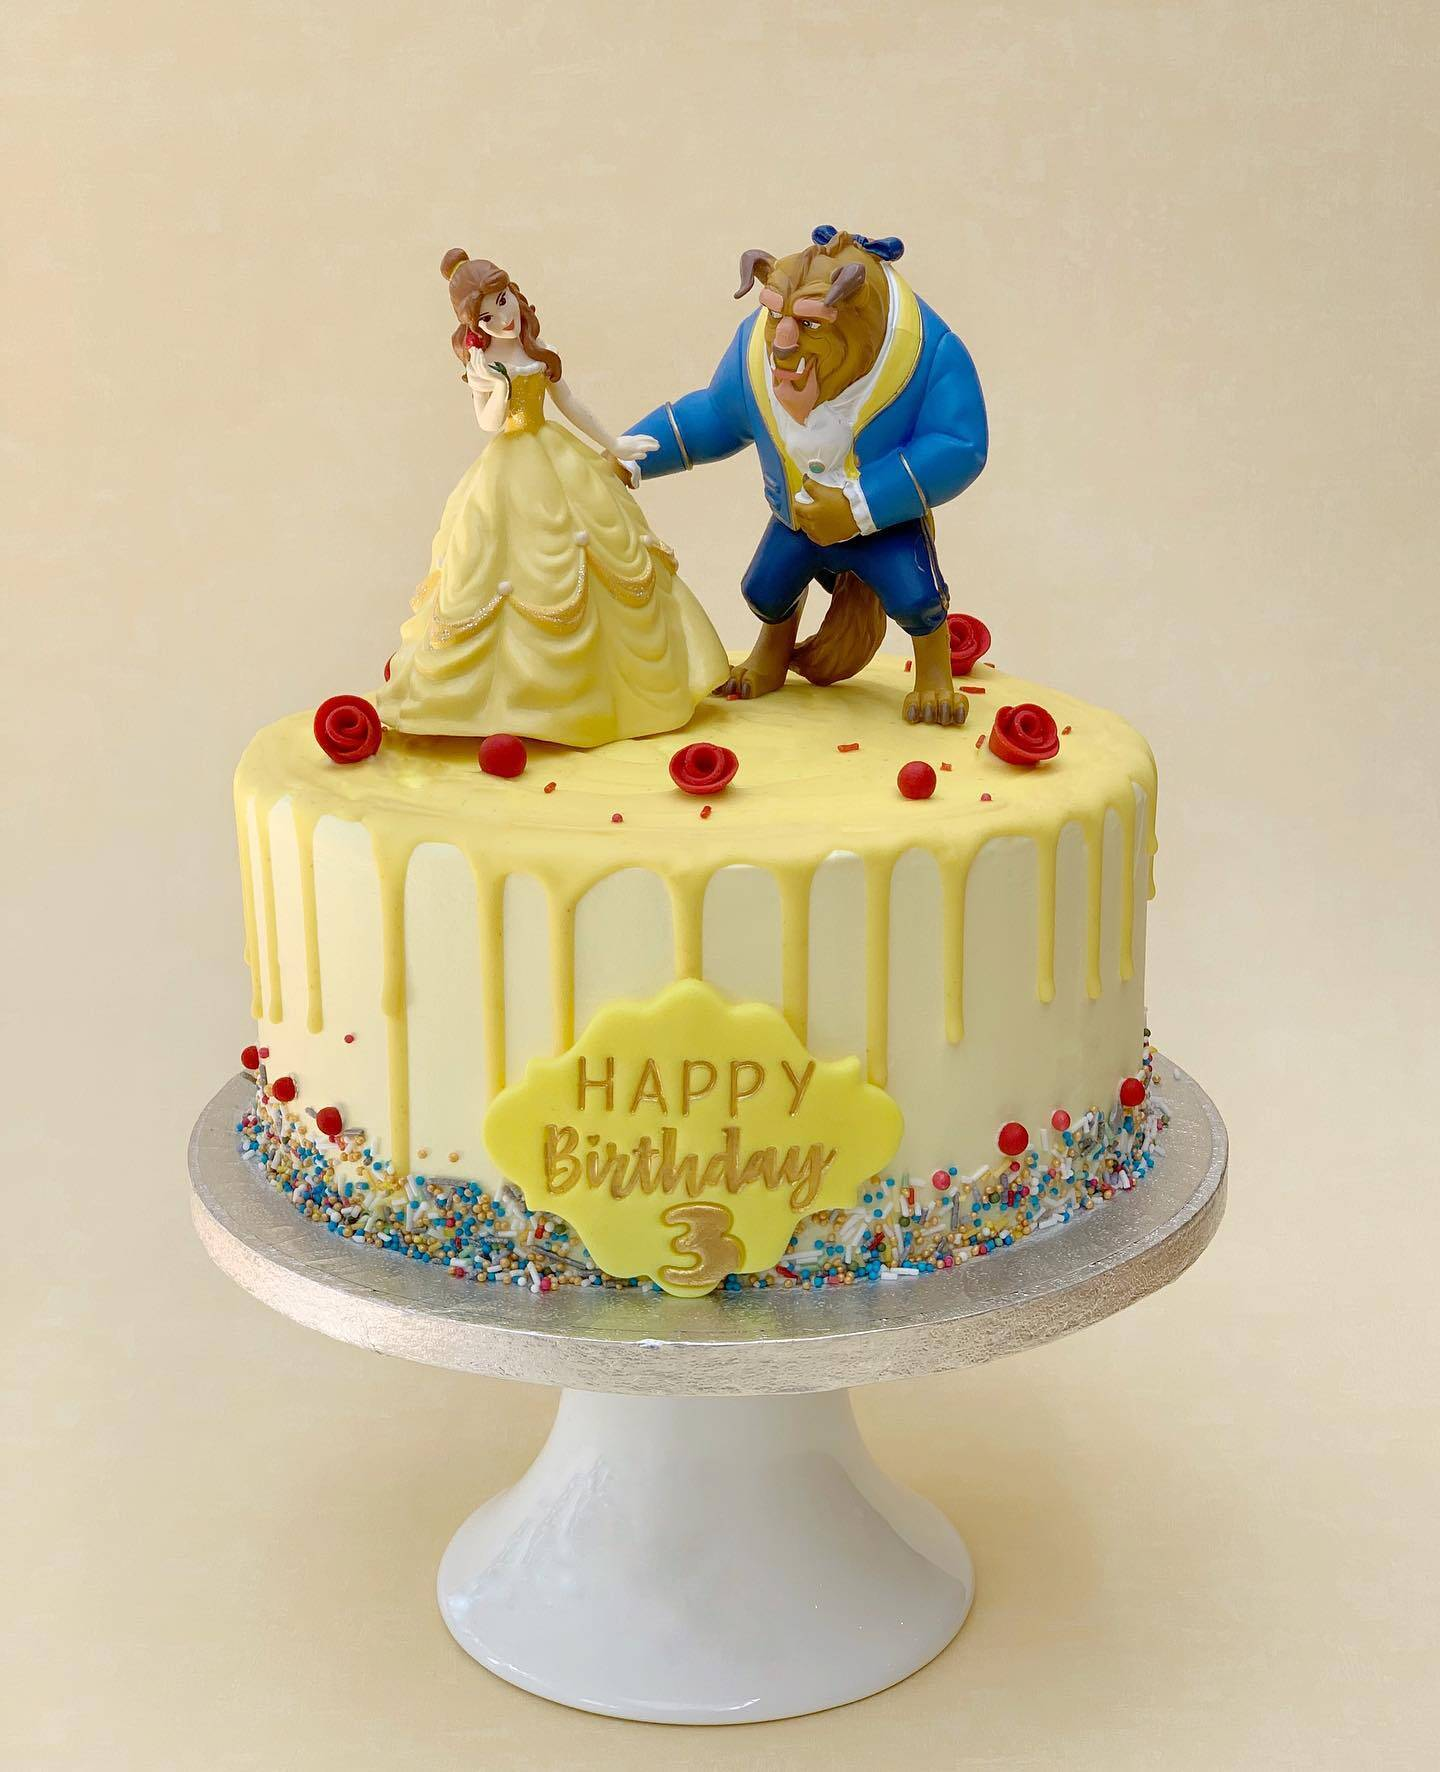 The Beauty and the Beast Birthday cake, Red Velvet